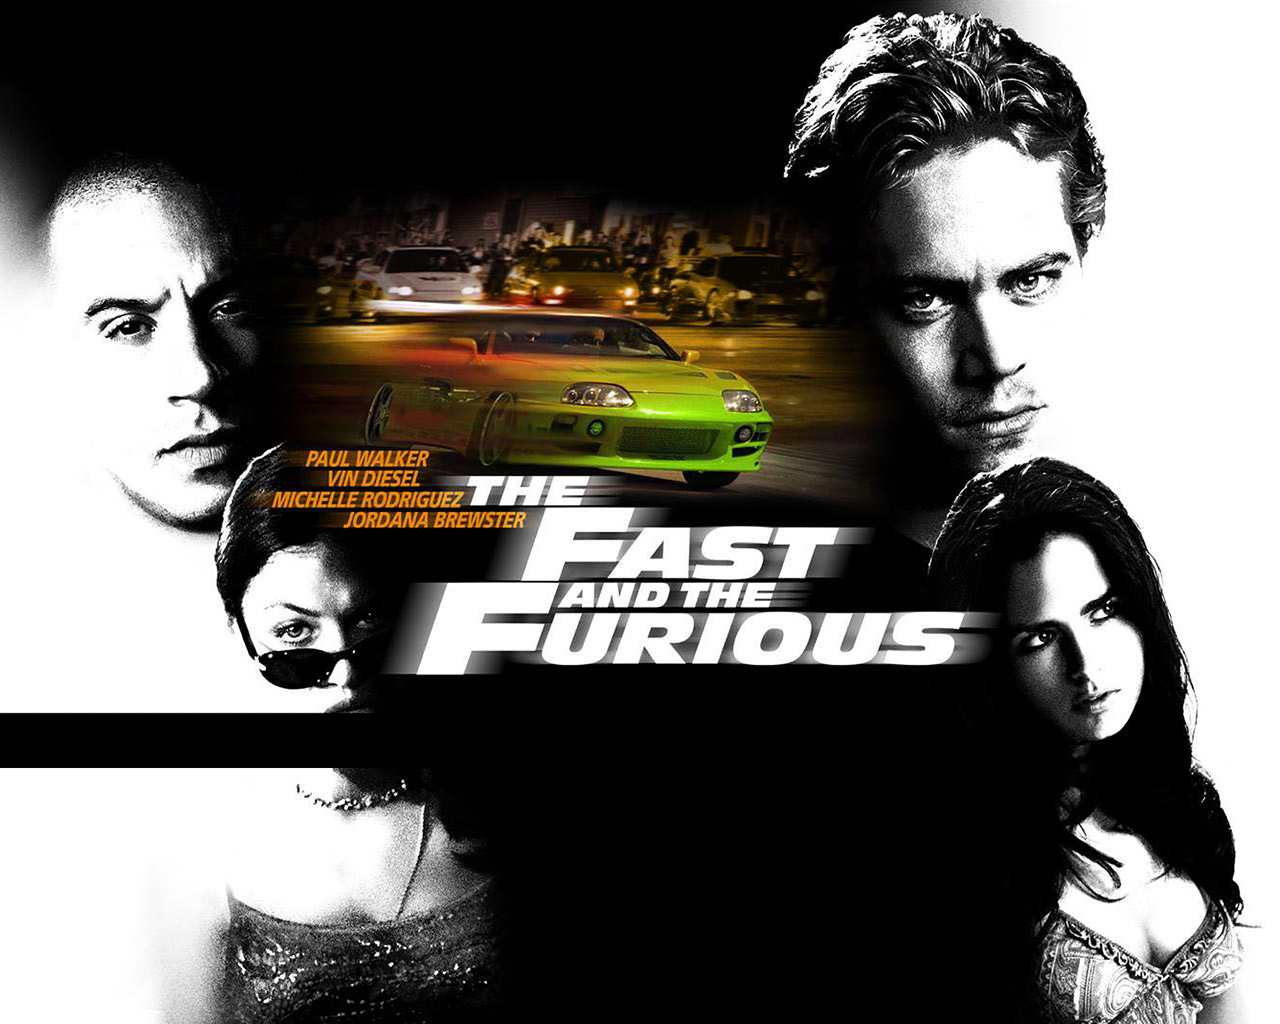 the first movie in the fast furious franchise returns to theaters